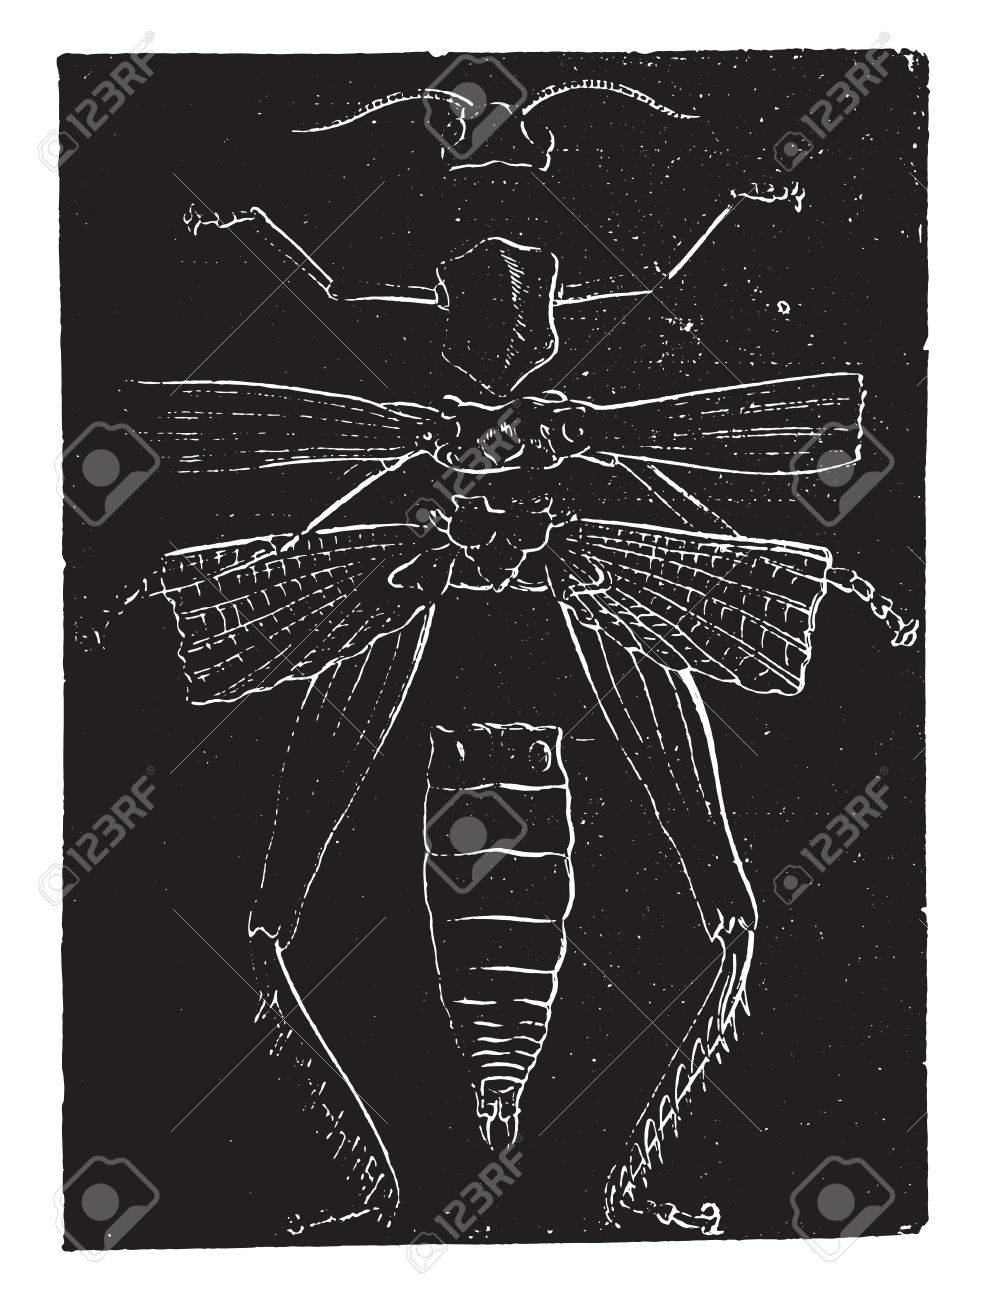 Skeletal Anatomy Of A Grasshopper, Vintage Engraved Illustration ...